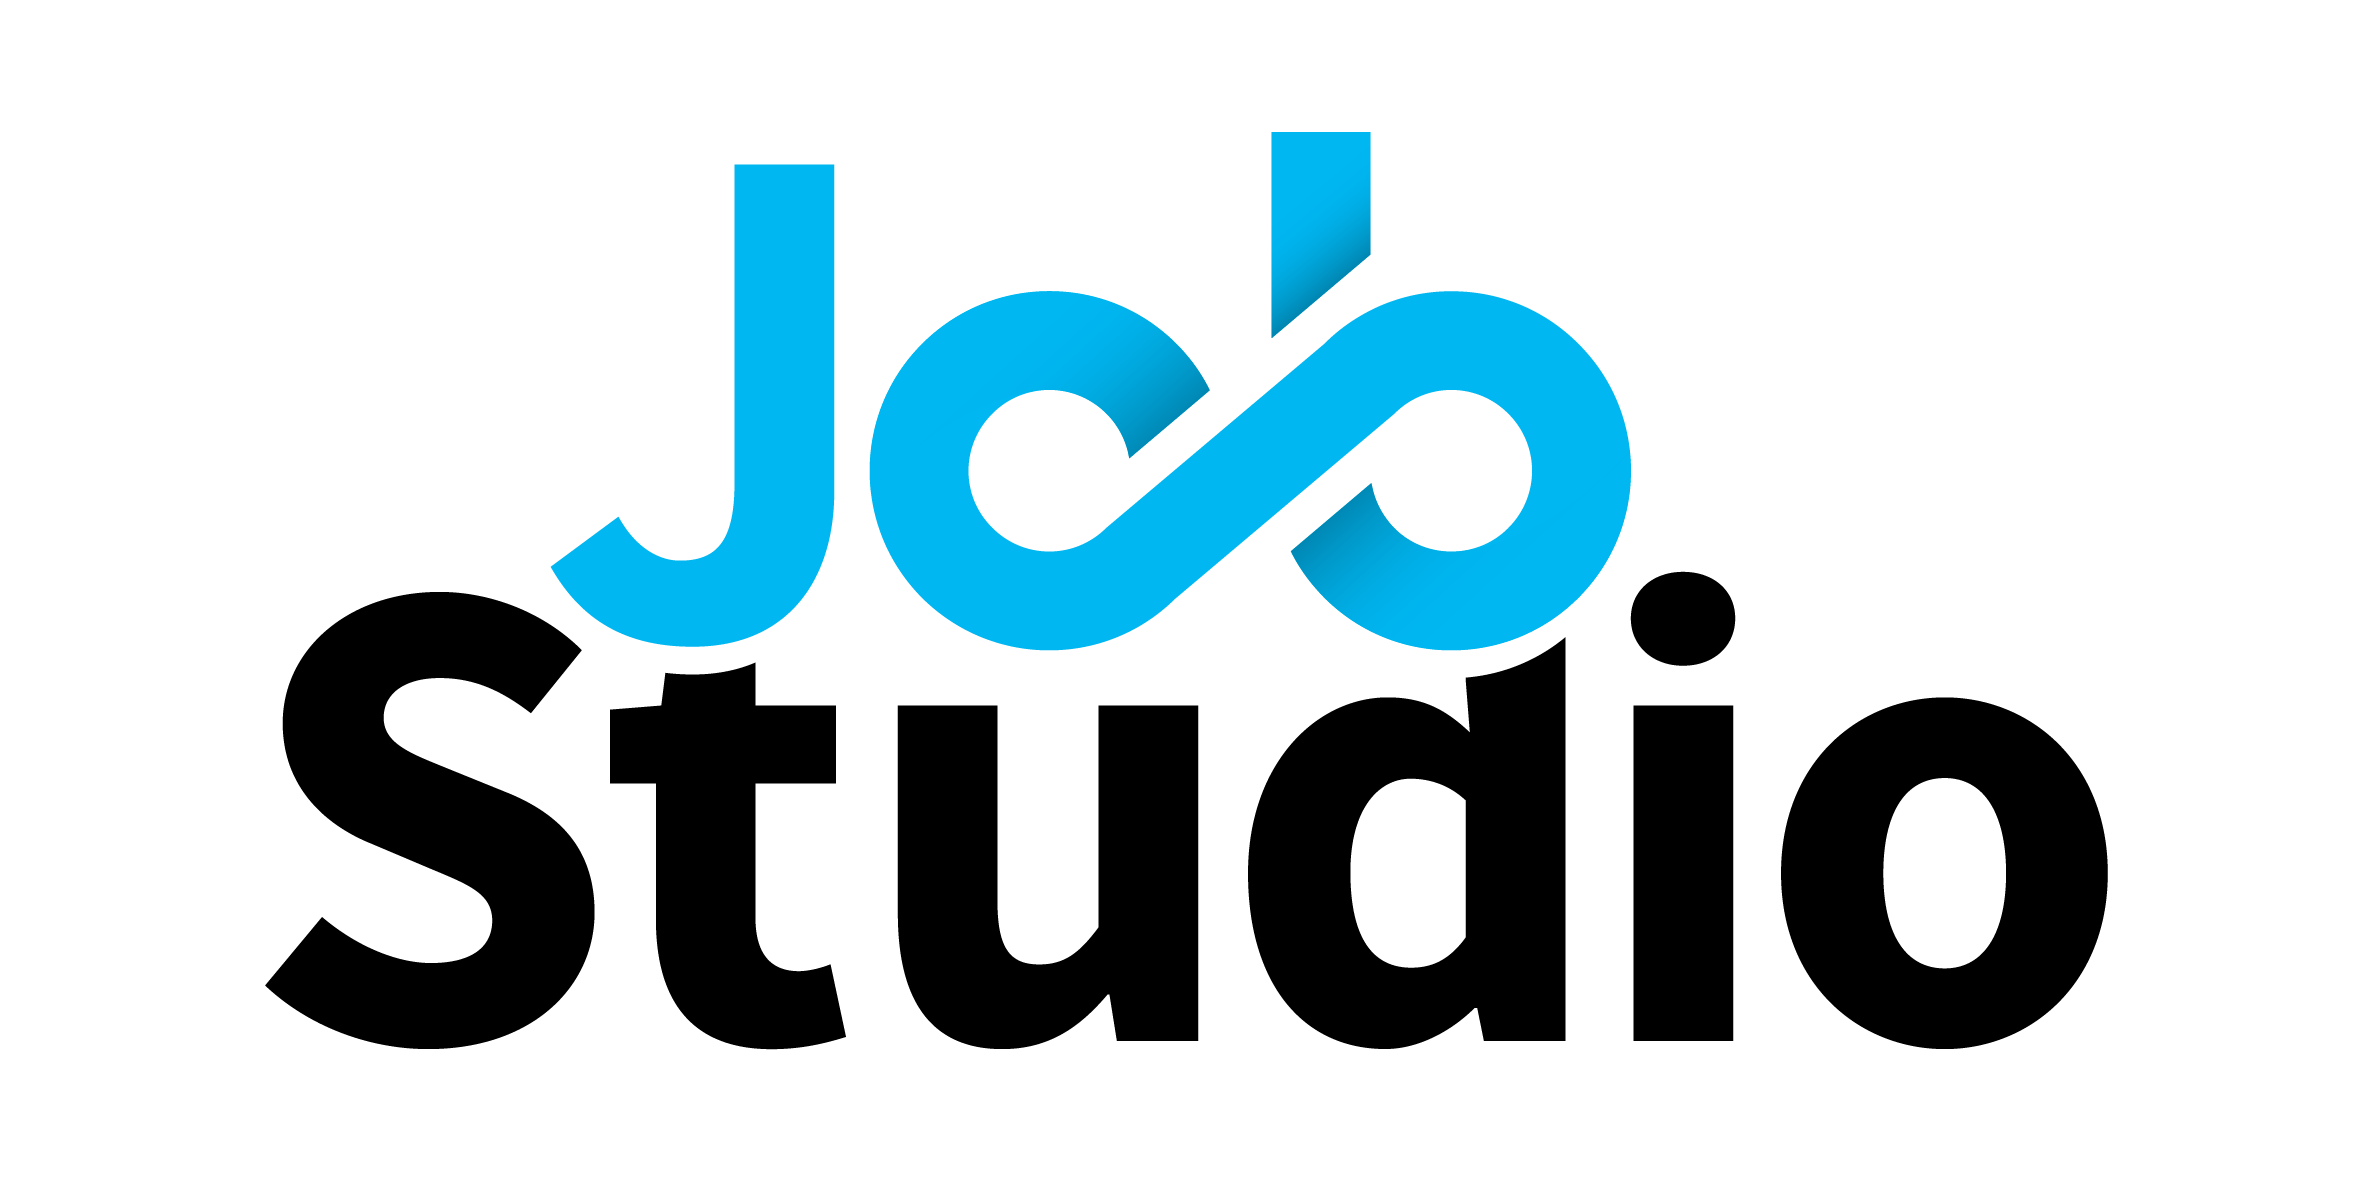 "<h3>At JobStudio, we believe in building a genuine relationship with you. We seek to understand you, much like a friend, and to find you the job you deserve. Here are three reasons&nbsp;<a href=""http://www.jobstudio.com.sg/our-story/"" rel=""noopener noreferrer"" target=""_blank"" style=""color: rgb(79, 79, 79);"">why you can count on us to help you find your ideal job.</a></h3><p><br></p><p class=""ql-align-center""><a href=""http://www.jobstudio.com.sg/our-story/"" rel=""noopener noreferrer"" target=""_blank"" style=""color: rgb(79, 79, 79);""><img src=""https://www.jobstudio.com.sg/wp-content/uploads/js-icons-heart-50x50.png"" alt=""js-icons-heart"" height=""50"" width=""50""></a></p><p class=""ql-align-center""><strong>We Genuinely Care For You</strong></p><p class=""ql-align-center"">We stand in your shoes and make it our priority to understand you, your needs as well as ambitions.</p><p class=""ql-align-center""><a href=""http://www.jobstudio.com.sg/our-story/"" rel=""noopener noreferrer"" target=""_blank"" style=""color: rgb(196, 196, 196);""><strong>Our Story</strong></a></p><p class=""ql-align-center""><a href=""http://www.jobstudio.com.sg/our-clients/"" rel=""noopener noreferrer"" target=""_blank"" style=""color: rgb(79, 79, 79);""><img src=""https://www.jobstudio.com.sg/wp-content/uploads/js-icons-world-50x50.png"" alt=""js-icons-world"" height=""50"" width=""50""></a></p><p class=""ql-align-center""><strong>Advantage of a Strong Network</strong></p><p class=""ql-align-center"">We hold many strong relationships with major companies,&nbsp;providing us with the best and latest jobs.</p><p class=""ql-align-center""><a href=""http://www.jobstudio.com.sg/our-clients/"" rel=""noopener noreferrer"" target=""_blank"" style=""color: rgb(196, 196, 196);""><strong>Our Clients</strong></a></p><p class=""ql-align-center""><a href=""http://www.jobstudio.com.sg/find-jobs/"" rel=""noopener noreferrer"" target=""_blank"" style=""color: rgb(79, 79, 79);""><img src=""https://www.jobstudio.com.sg/wp-content/uploads/js-icons-best-50x50.png"" alt=""js-icons-best"" height=""50"" width=""50""></a></p><p class=""ql-align-center""><strong>You Deserve the Best</strong></p><p class=""ql-align-center"">We are recruitment specialists who have won industry awards &amp; numerous customers' accolades.</p><p><br></p>"